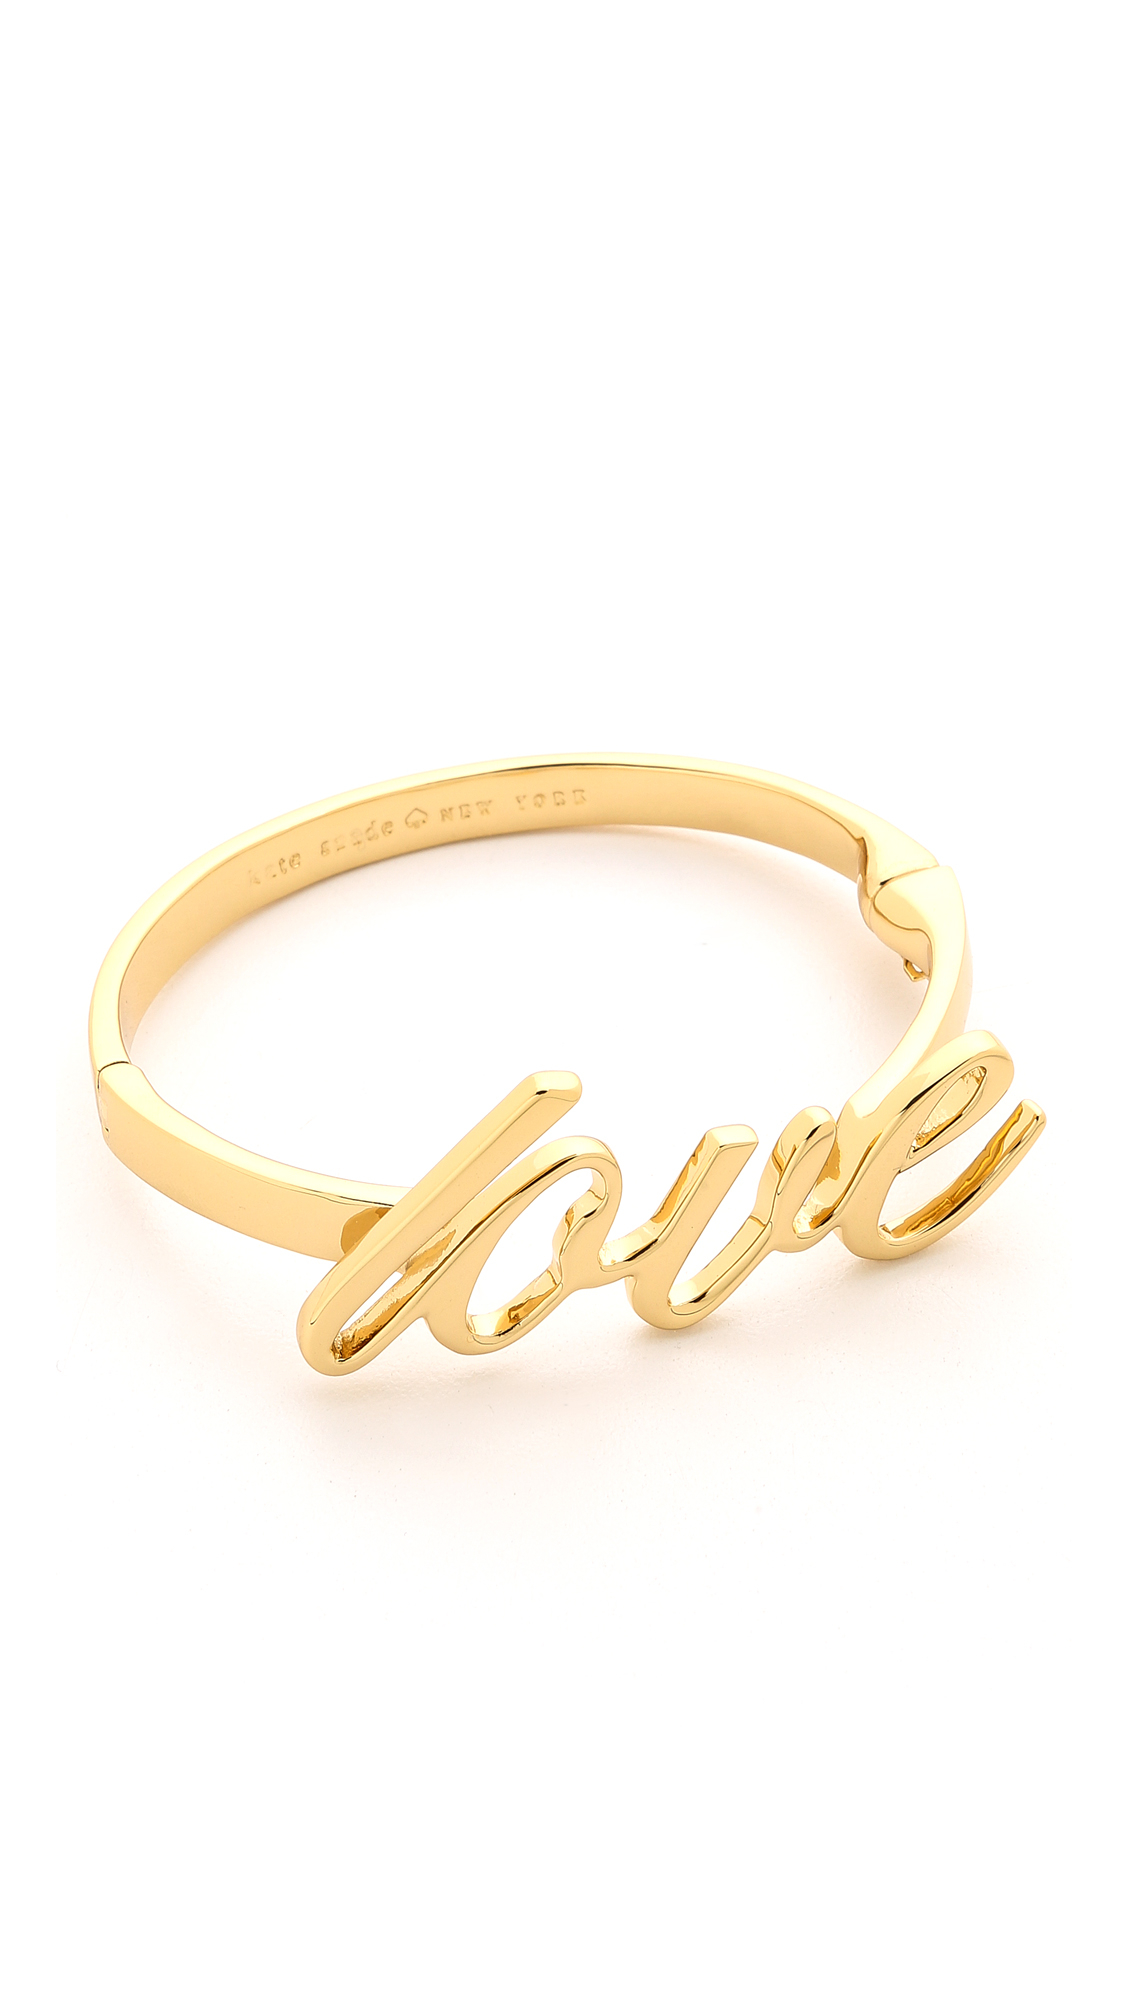 multi gold bracelet bangles sale id bangle gem cartier jewelry at for love bracelets org j l